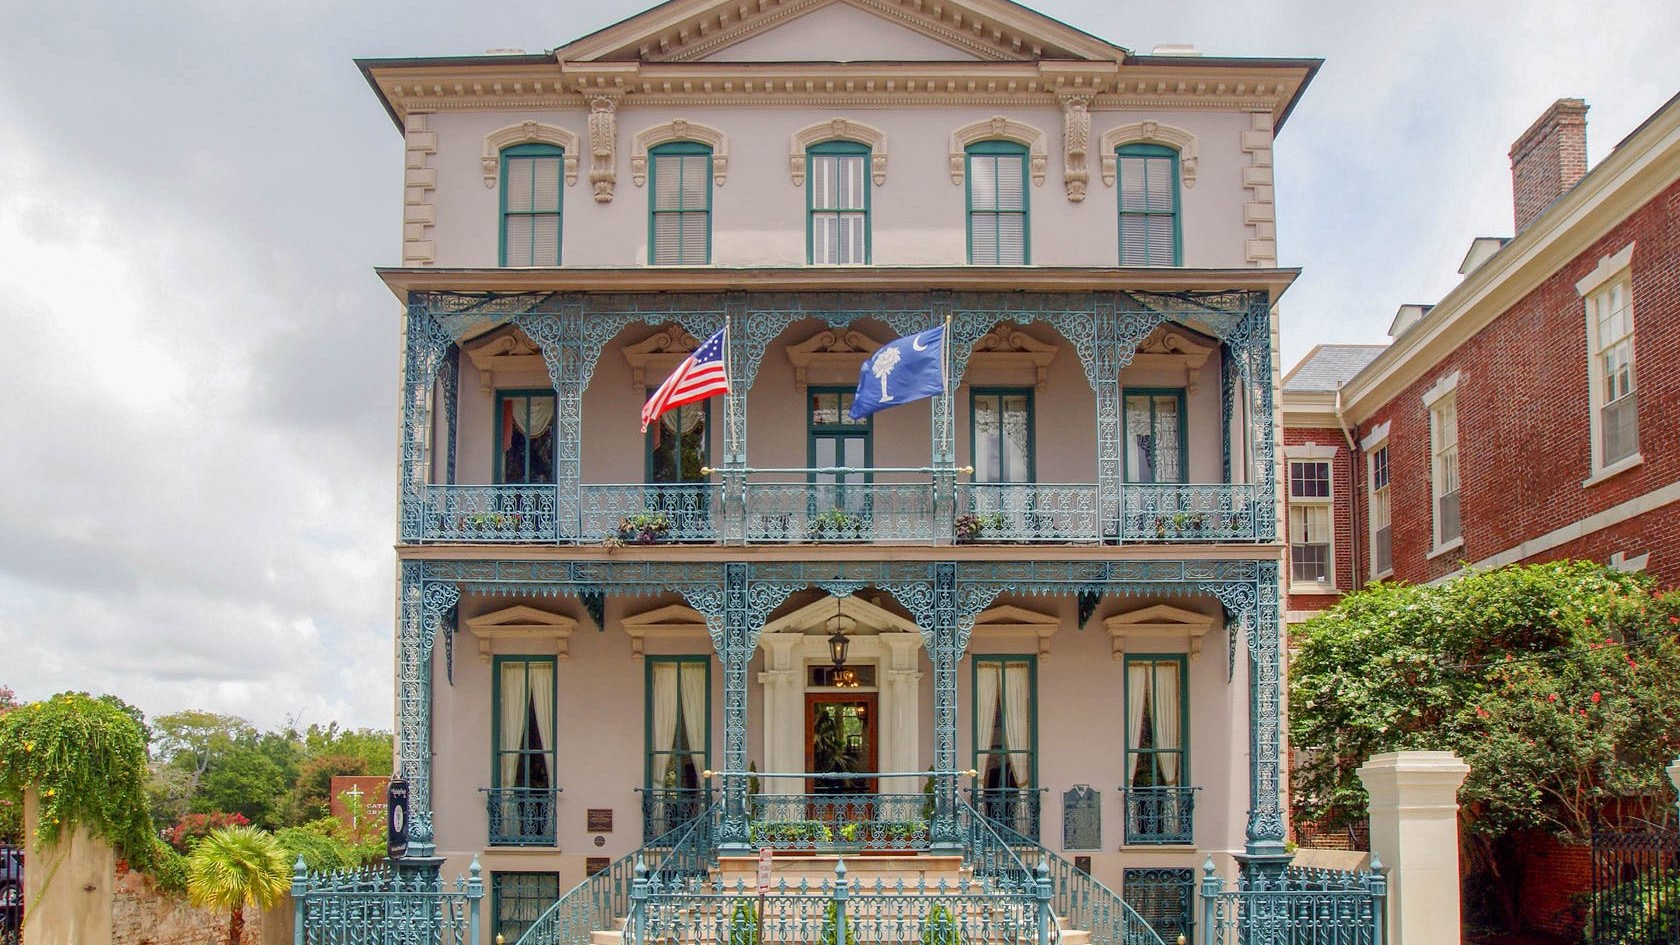 A statue in front of a building at John Rutledge House Inn.